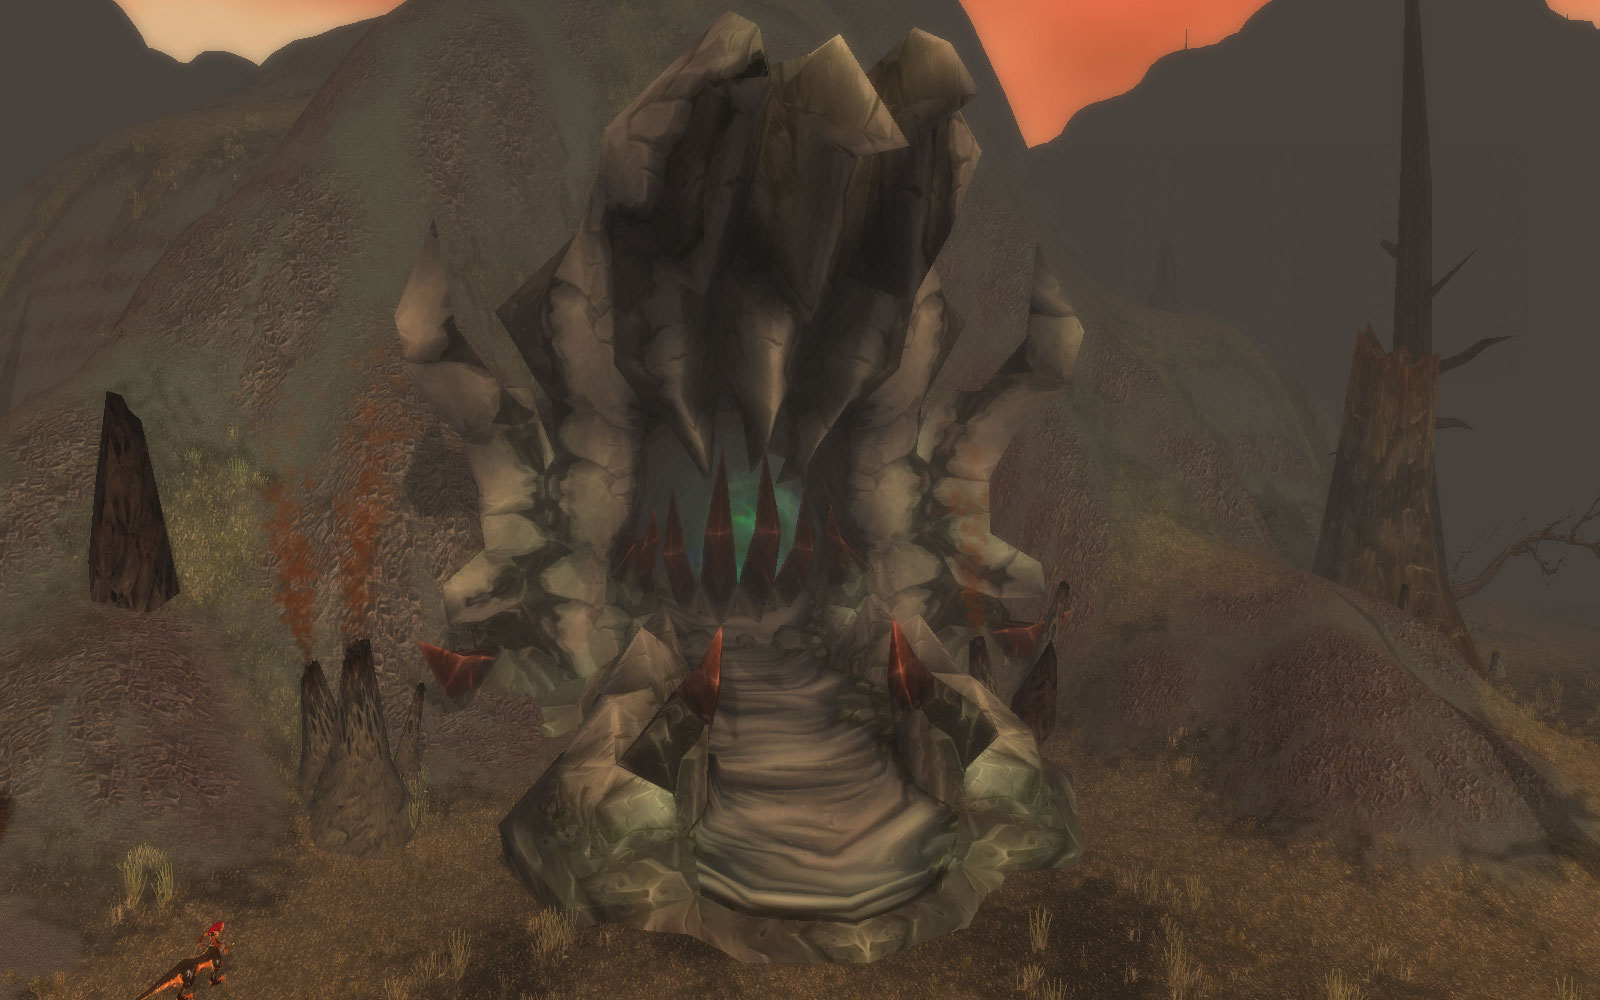 World of Warcraft Gold Guide - How To Make Gold in WOW: Solo